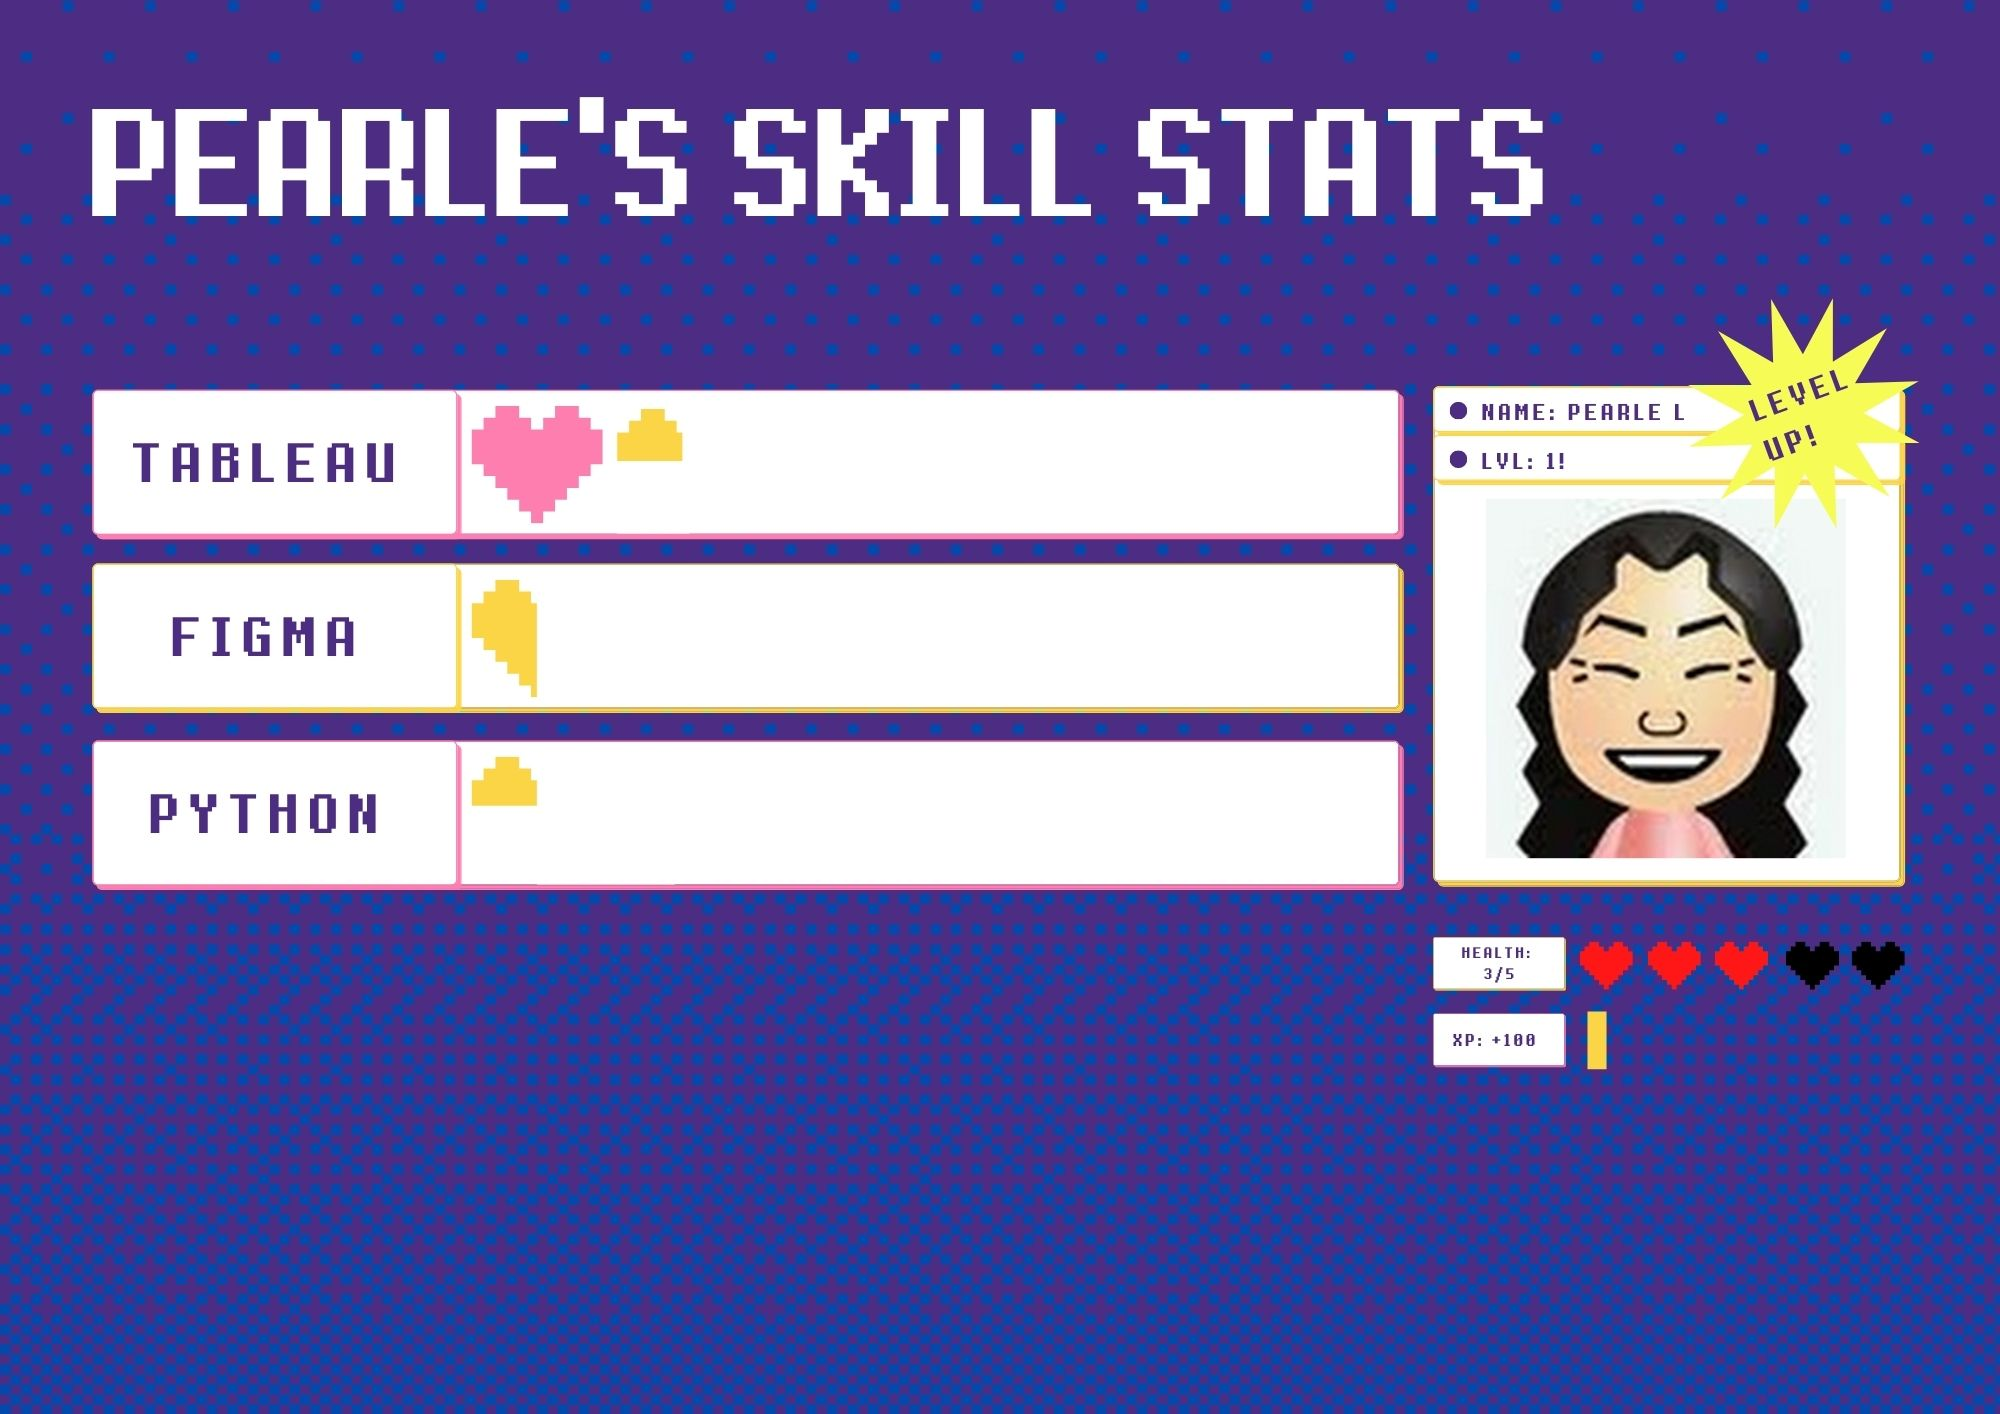 A purple card depicting Pearle's skills with Tableau, Figma, and Python, similar to a video game character's battle stats. Stats are Pearle's post-tutorial stats.